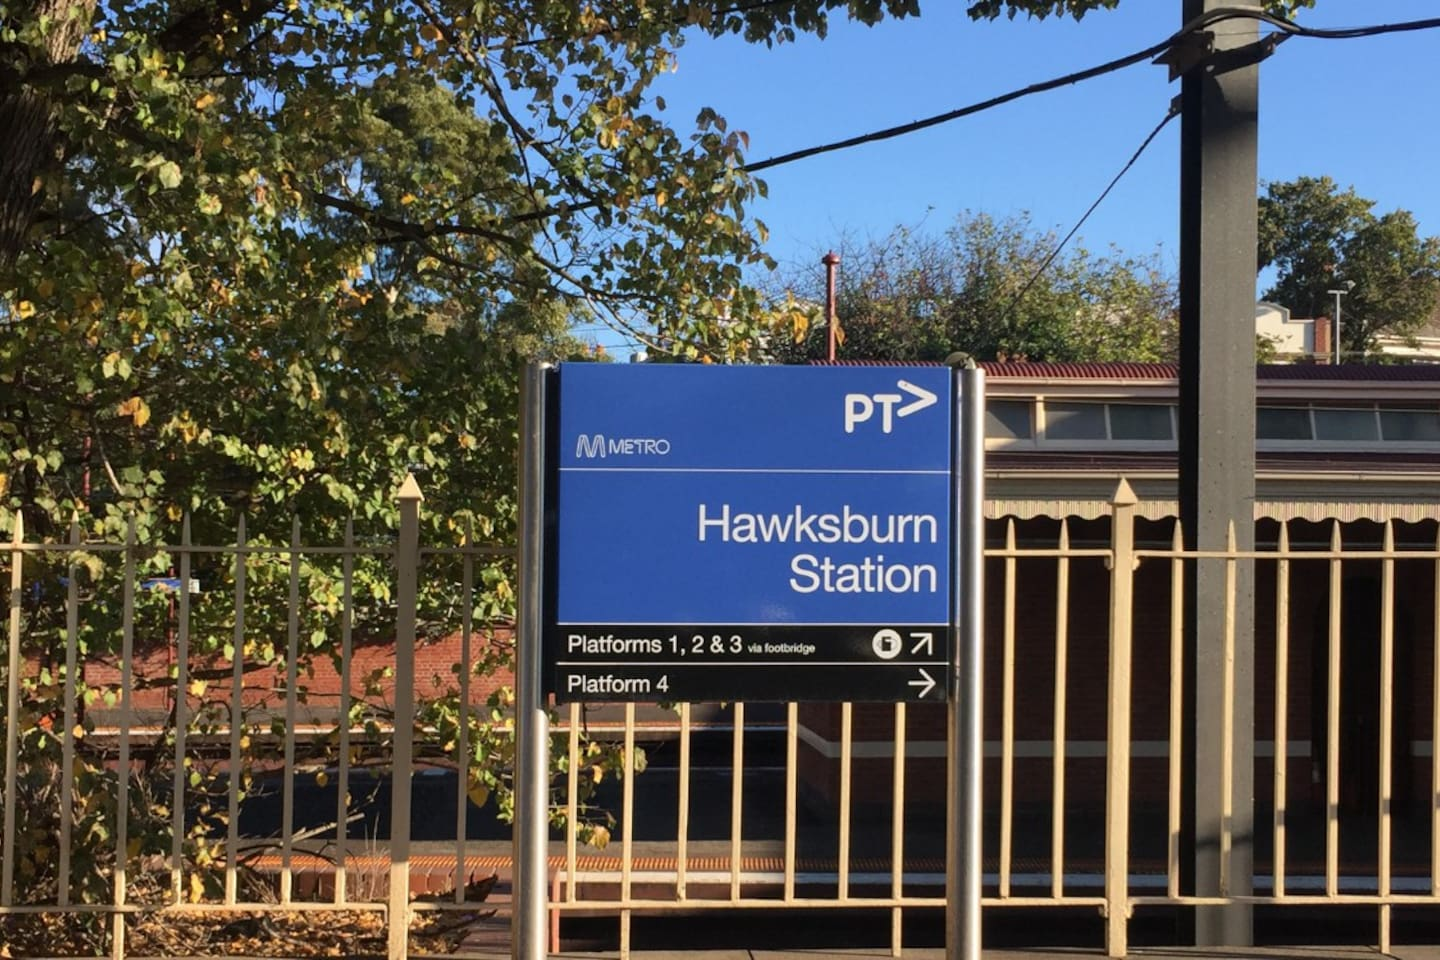 Hawksburn station a couple of minutes walk from the apartment